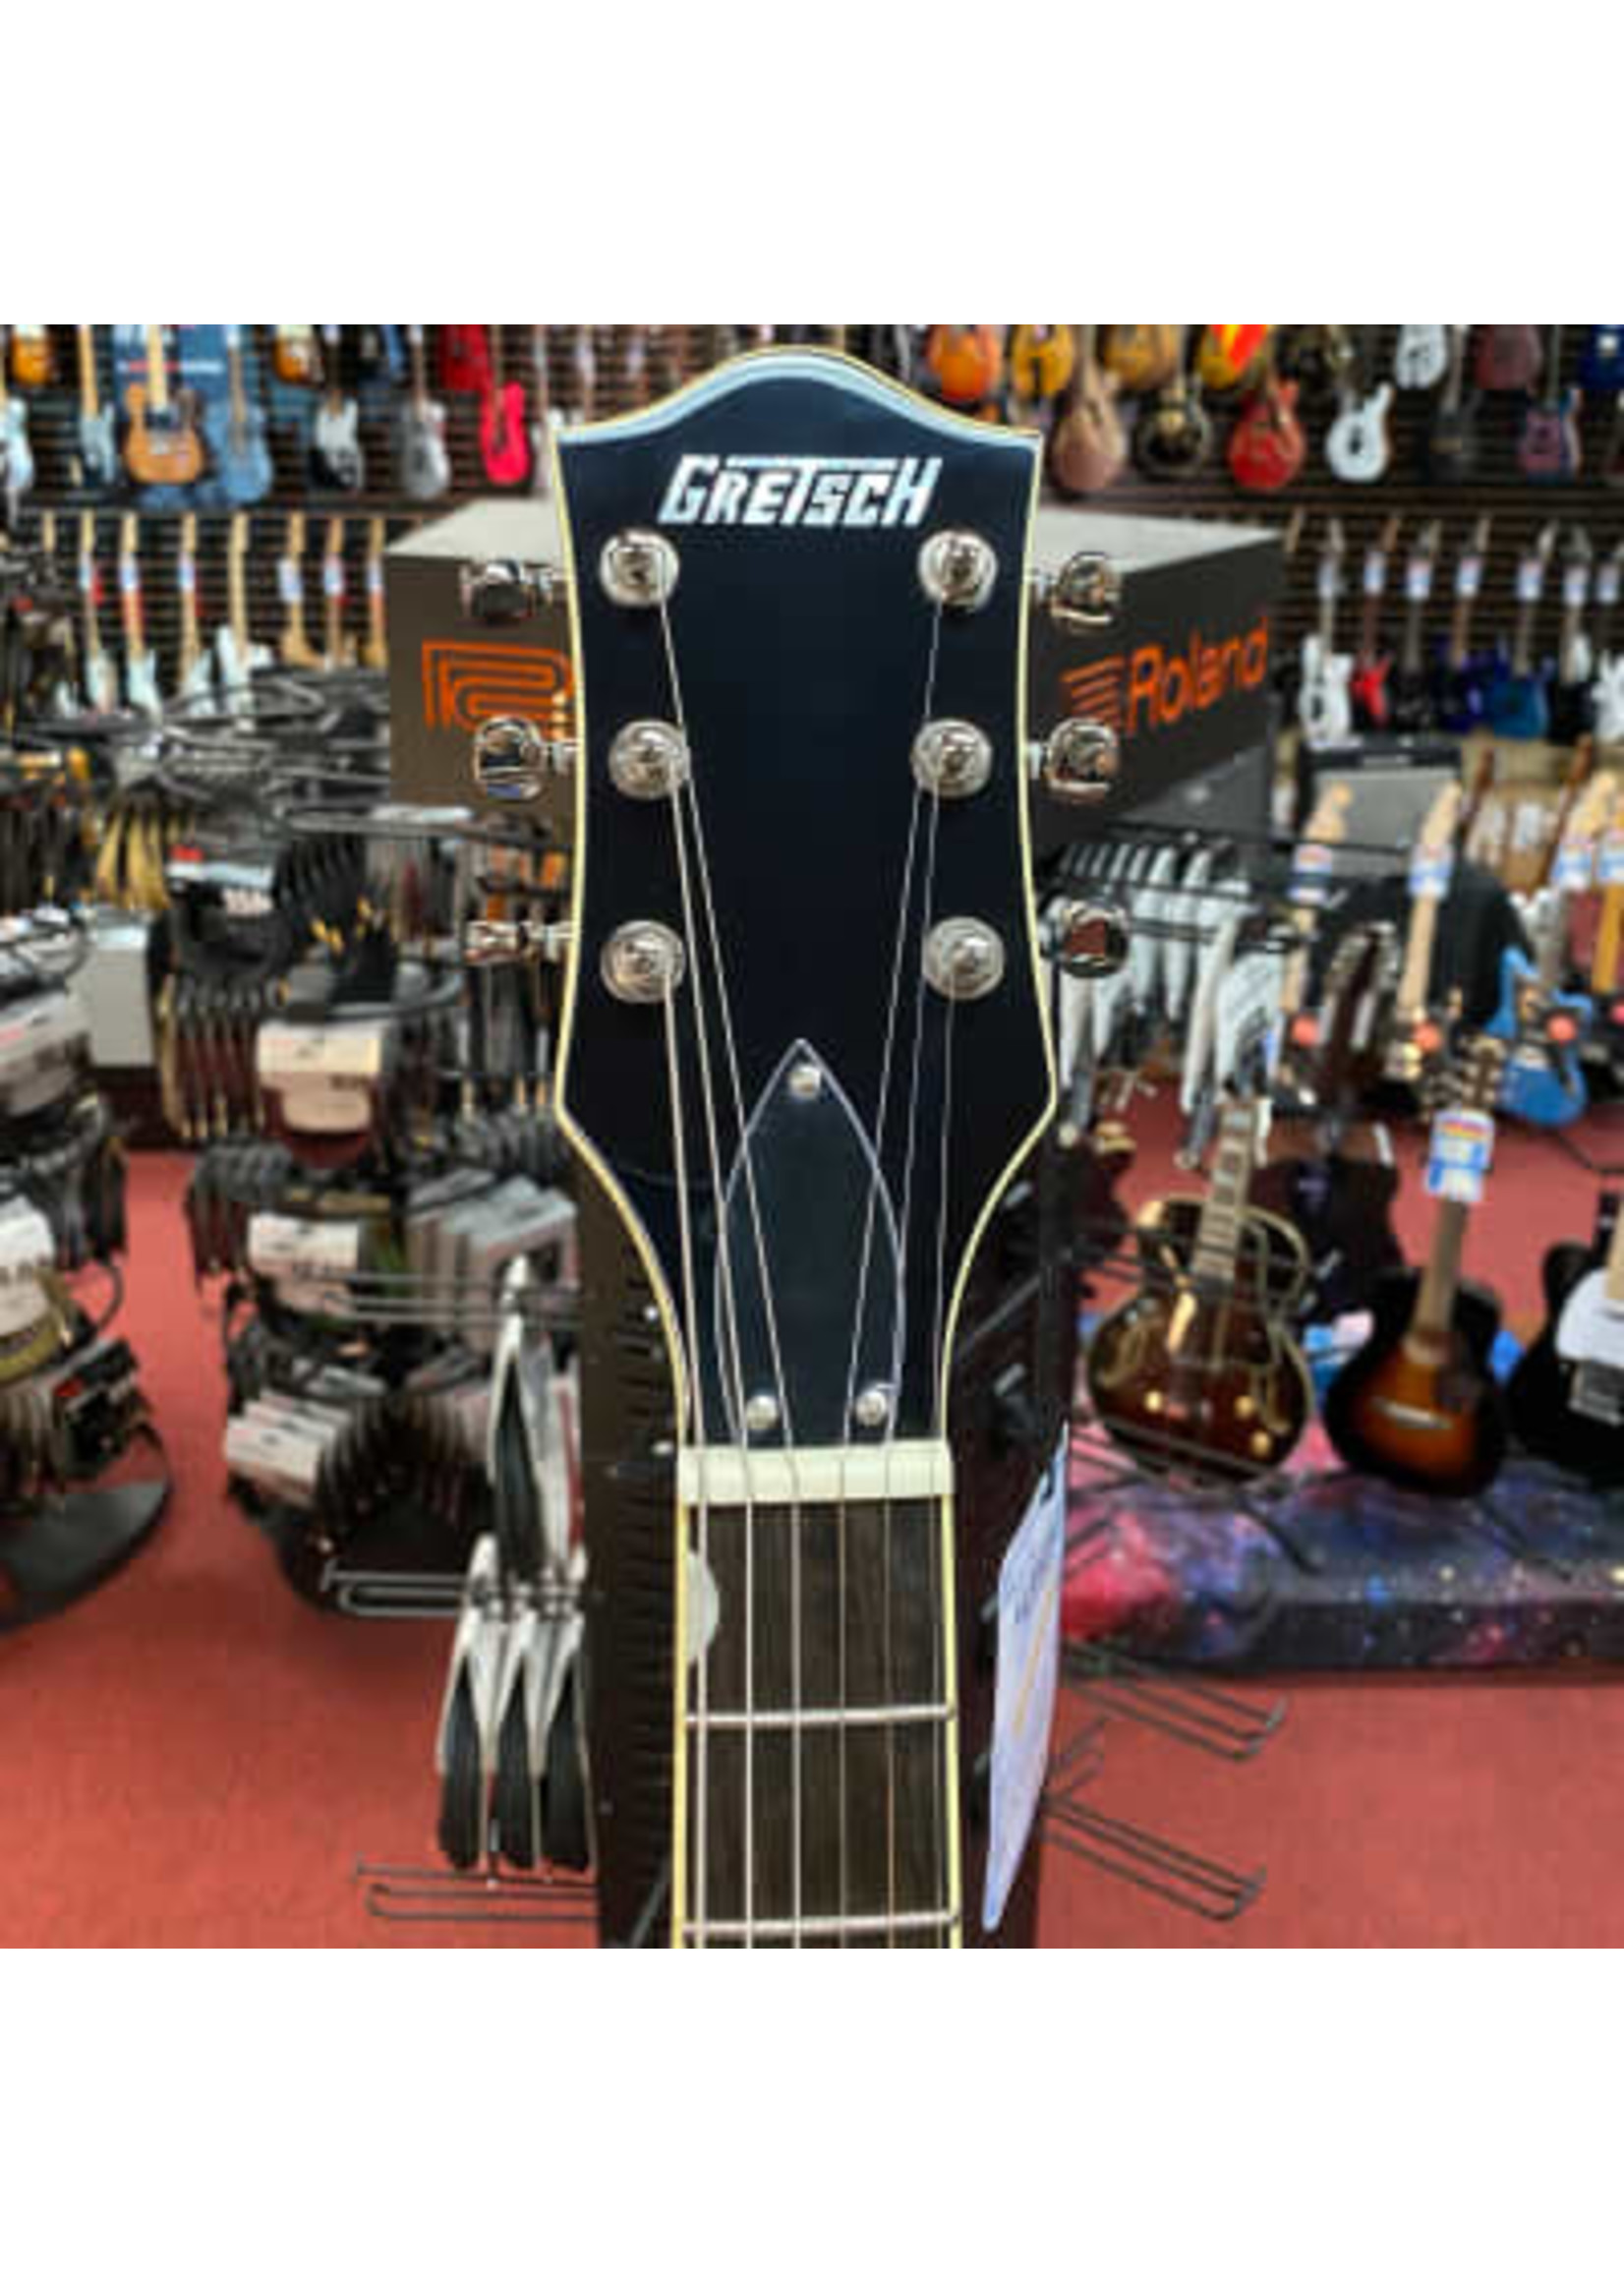 Gretsch Gretsch G5622 Electromatic Center Block Double-Cut with V-Stoptail Electric Guitar - Bristol Fog